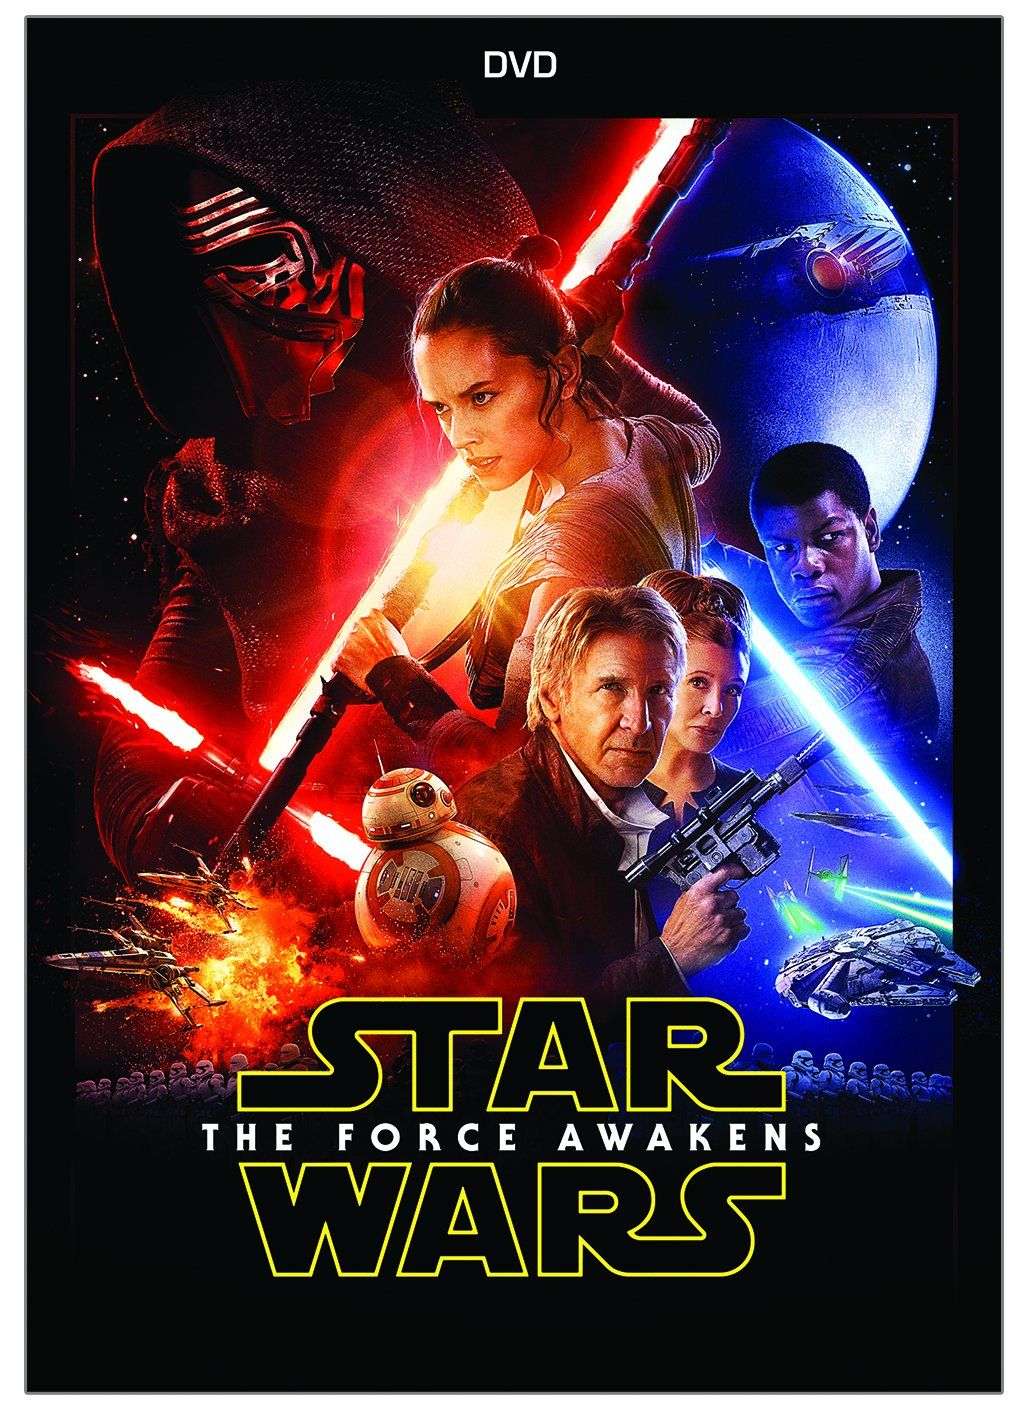 Pin By Sean Matteo On Movies I Adore Force Awakens Poster Force Awakens Star Wars Episode Vii